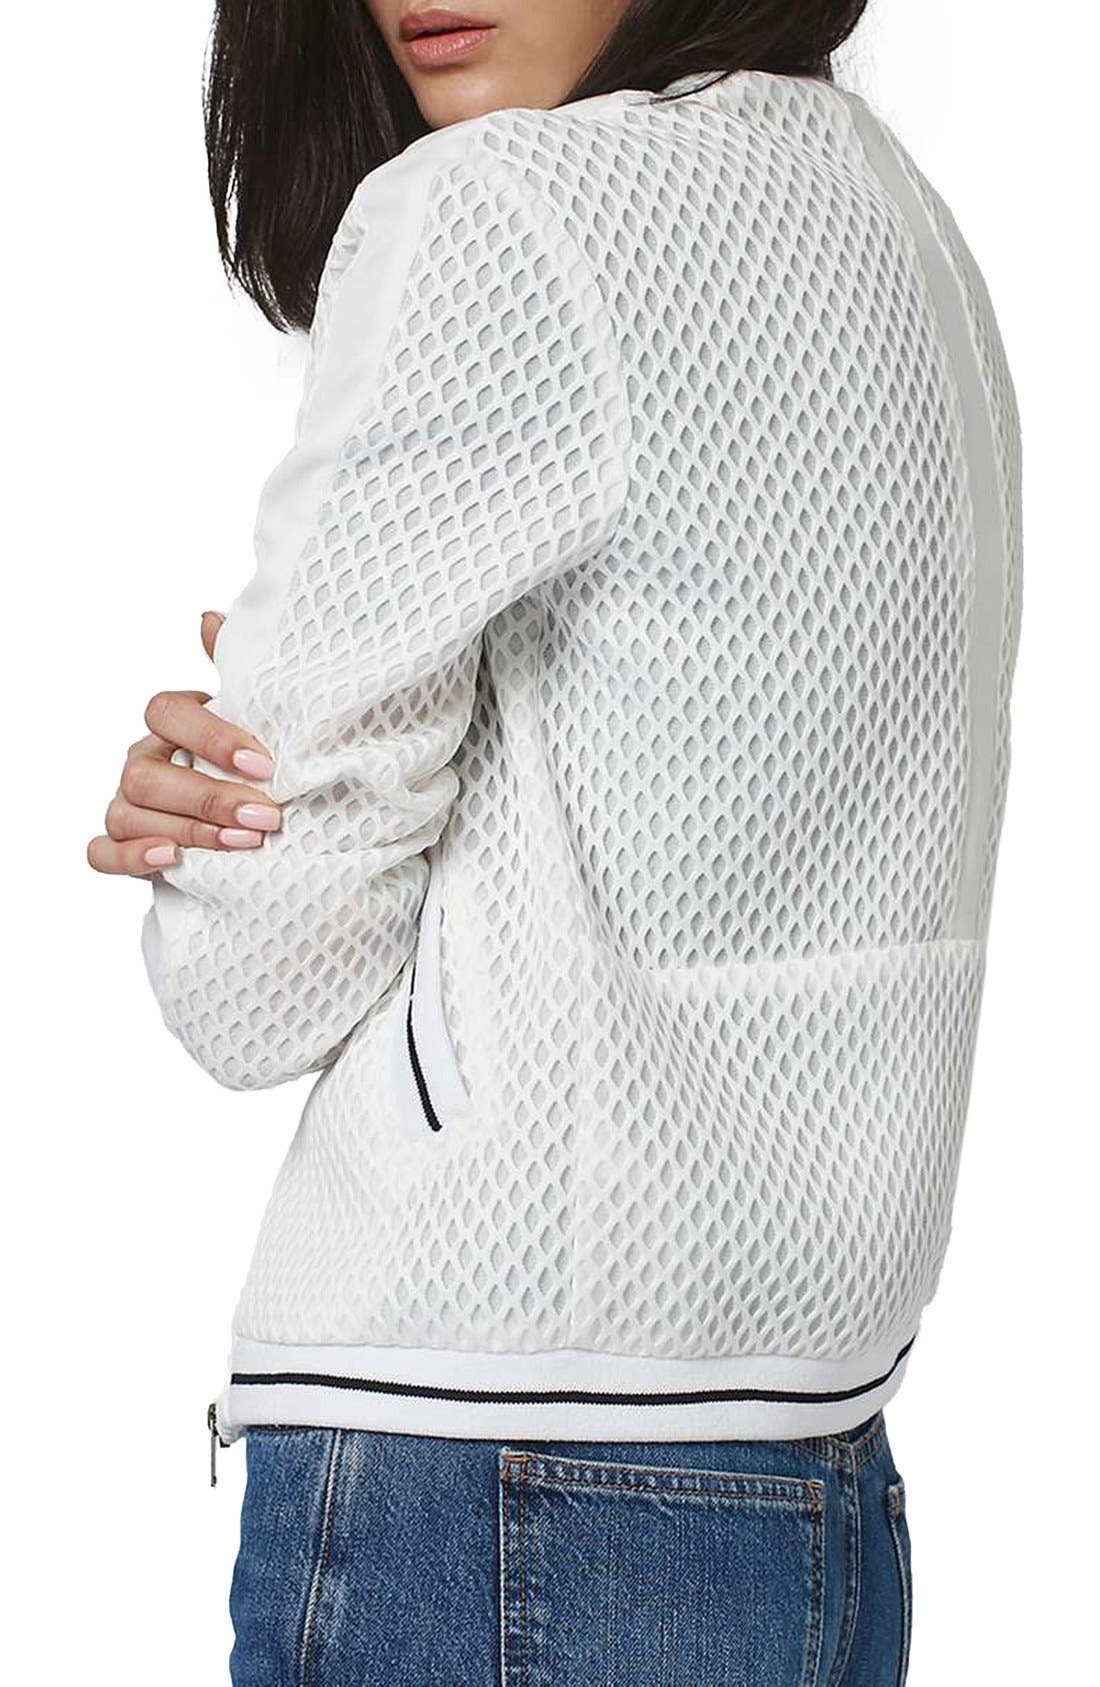 Diamond Airtex Bomber Jacket,                             Alternate thumbnail 2, color,                             Ivory